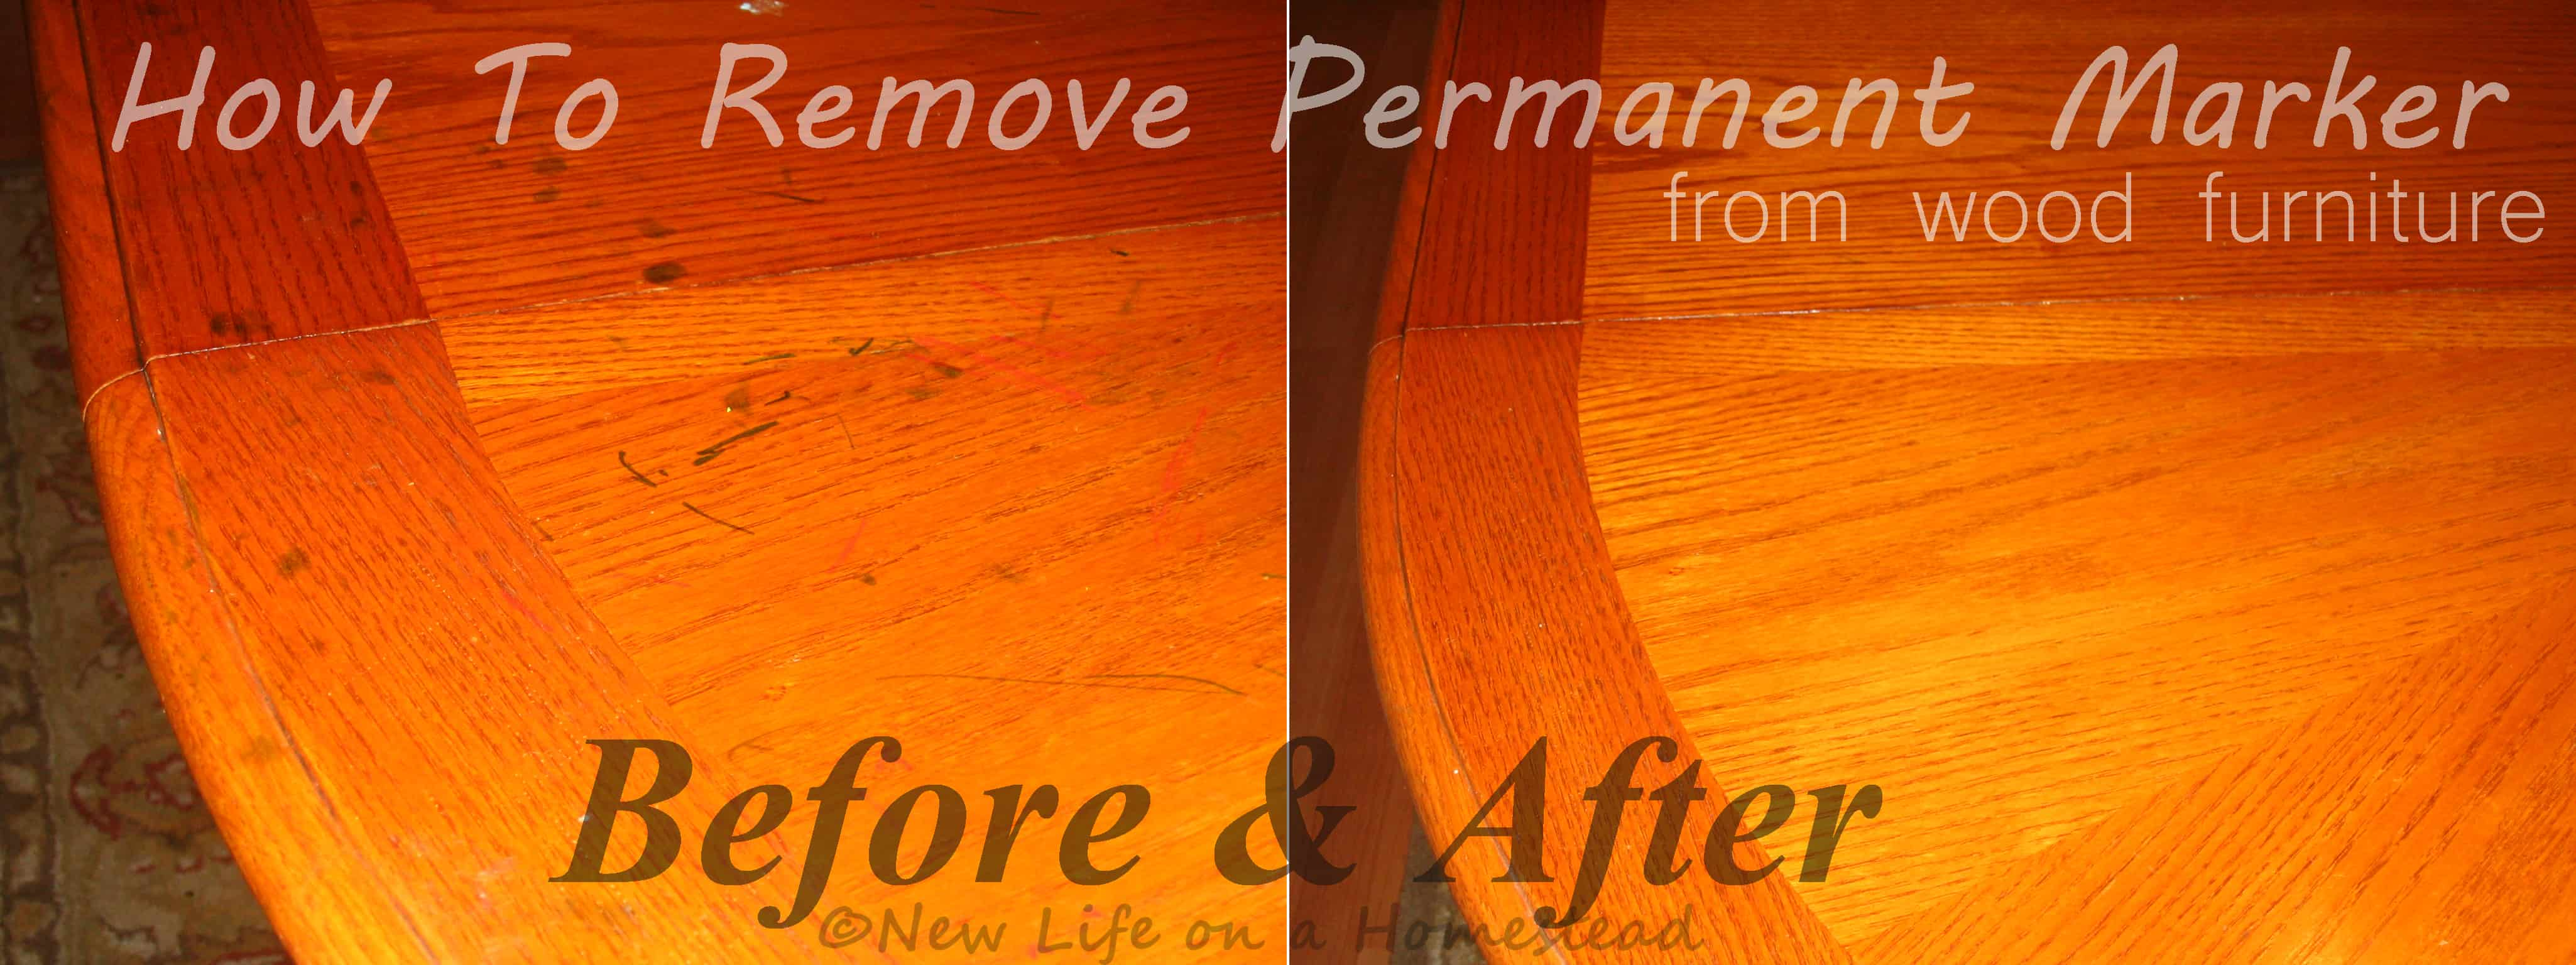 How To Get Permanent Marker Off Wood Furniture New Life